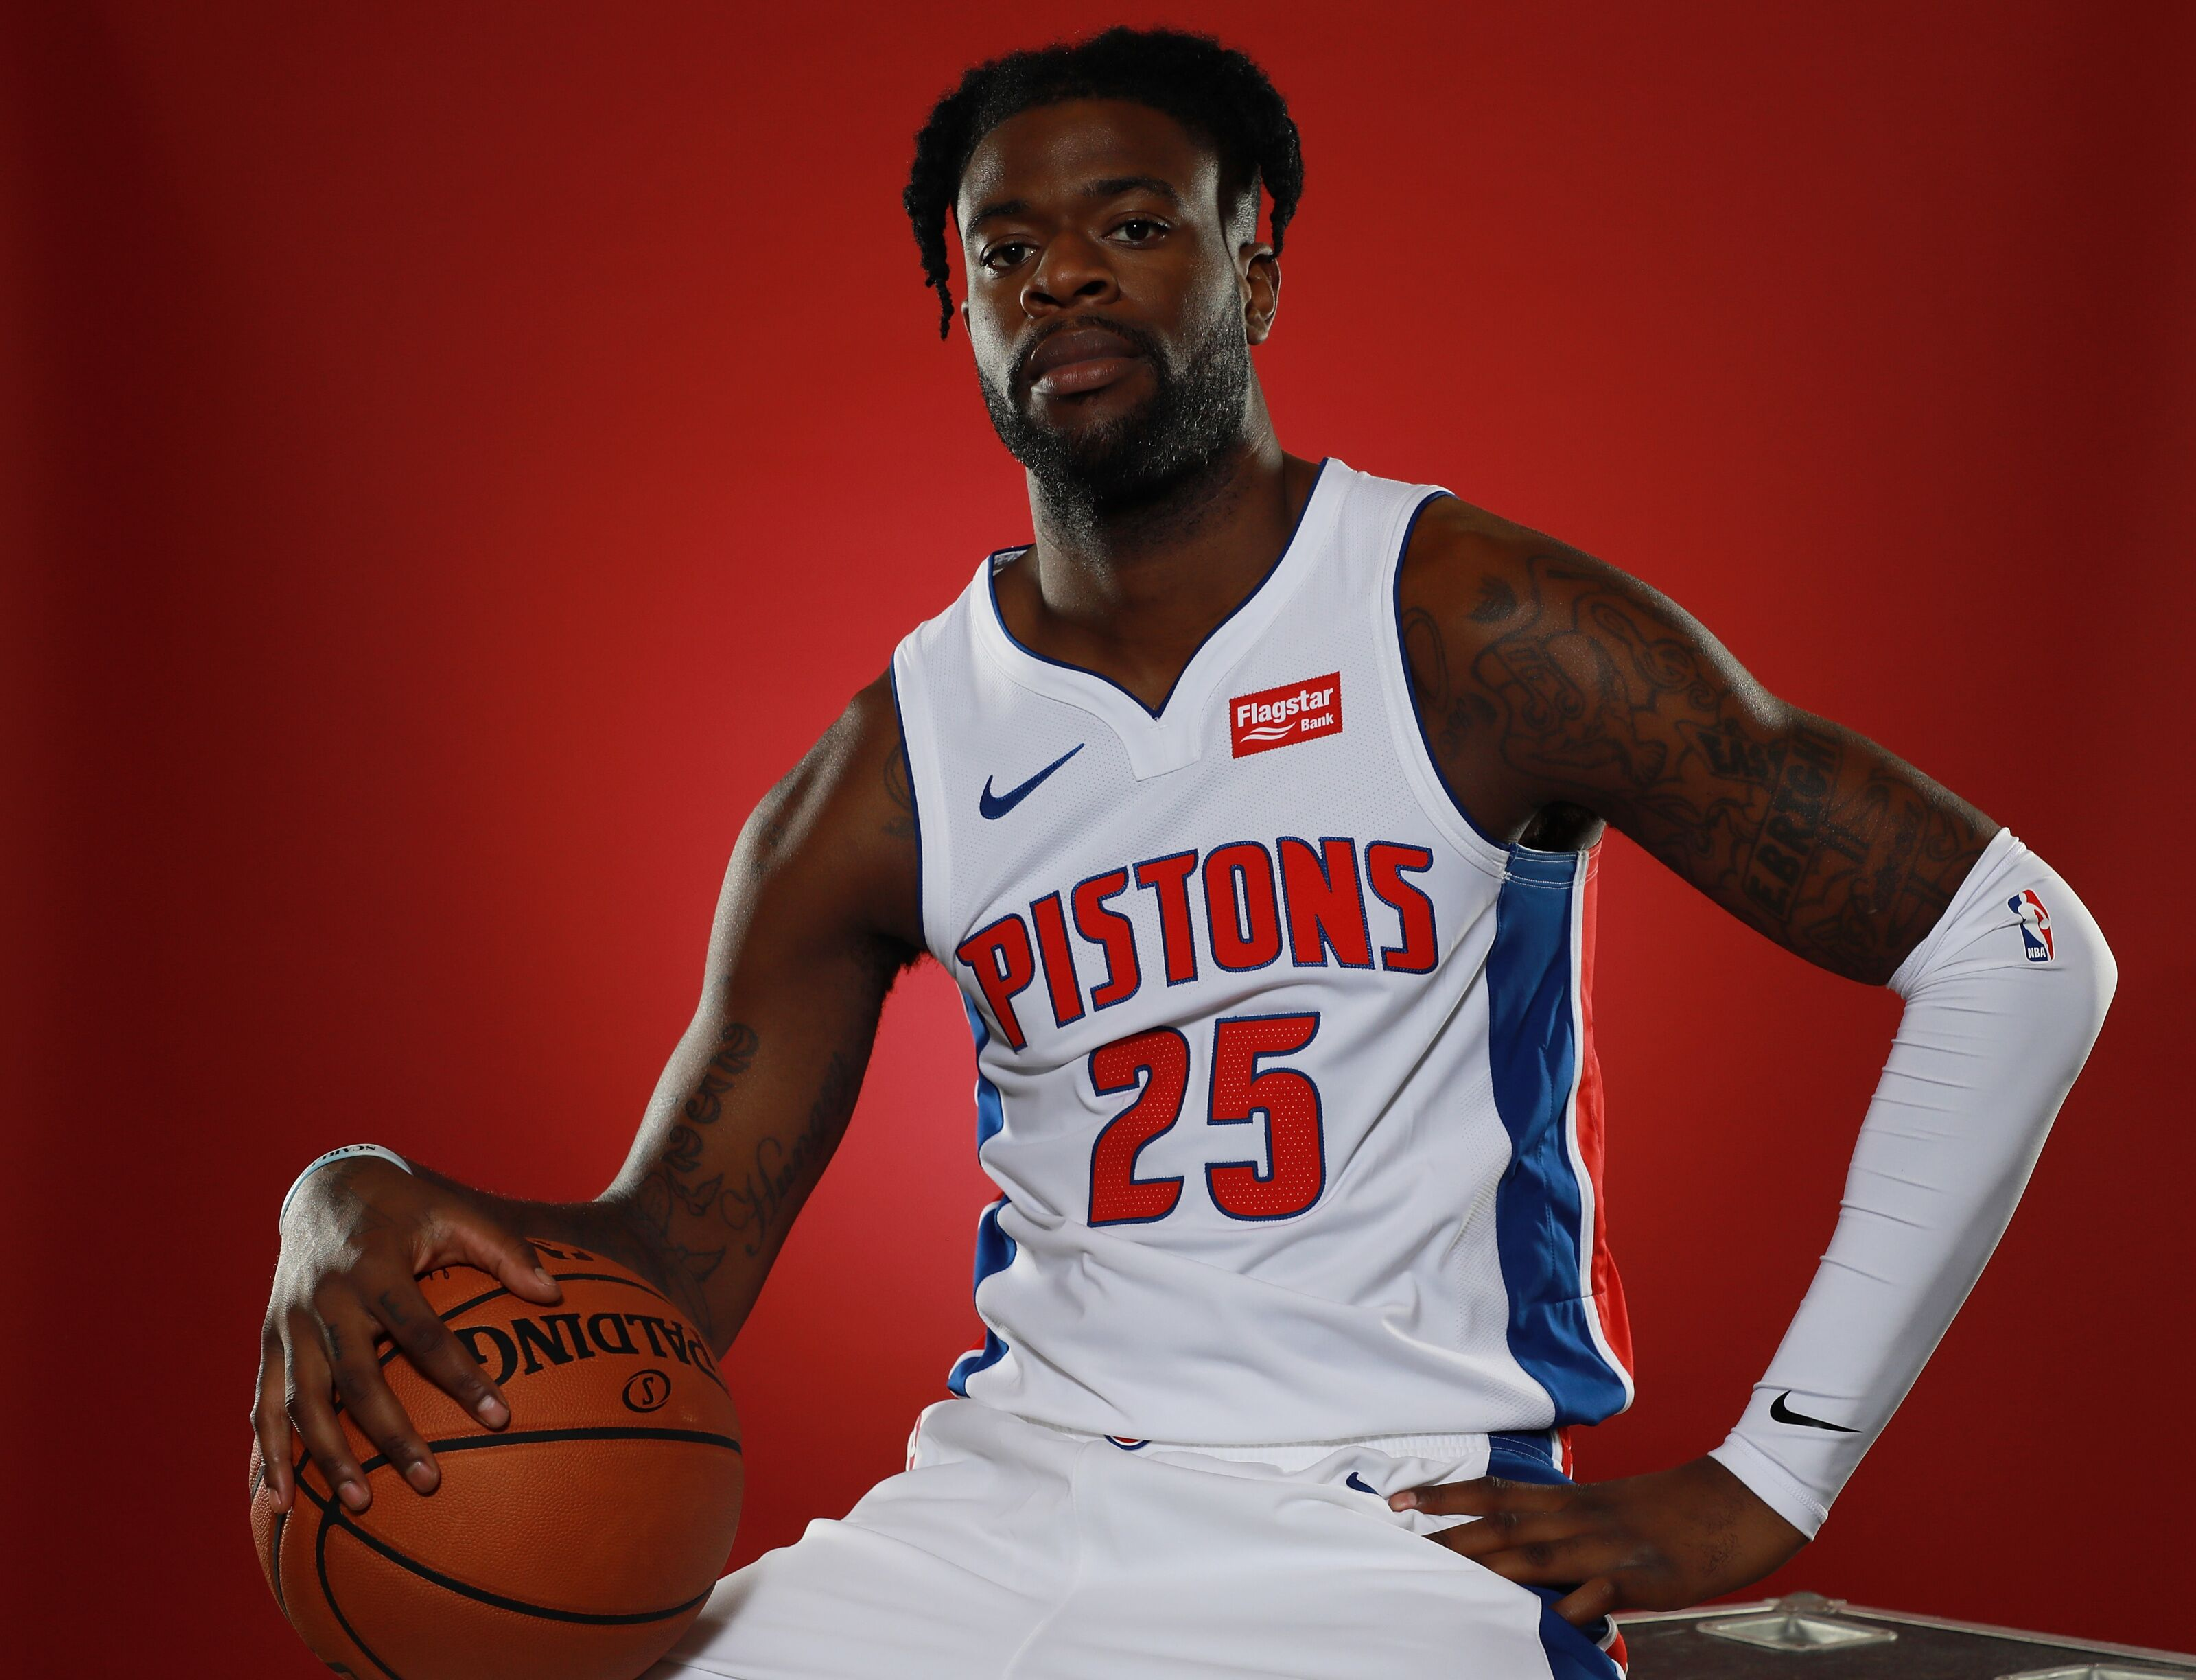 Who should start at shooting guard for the Detroit Pistons?